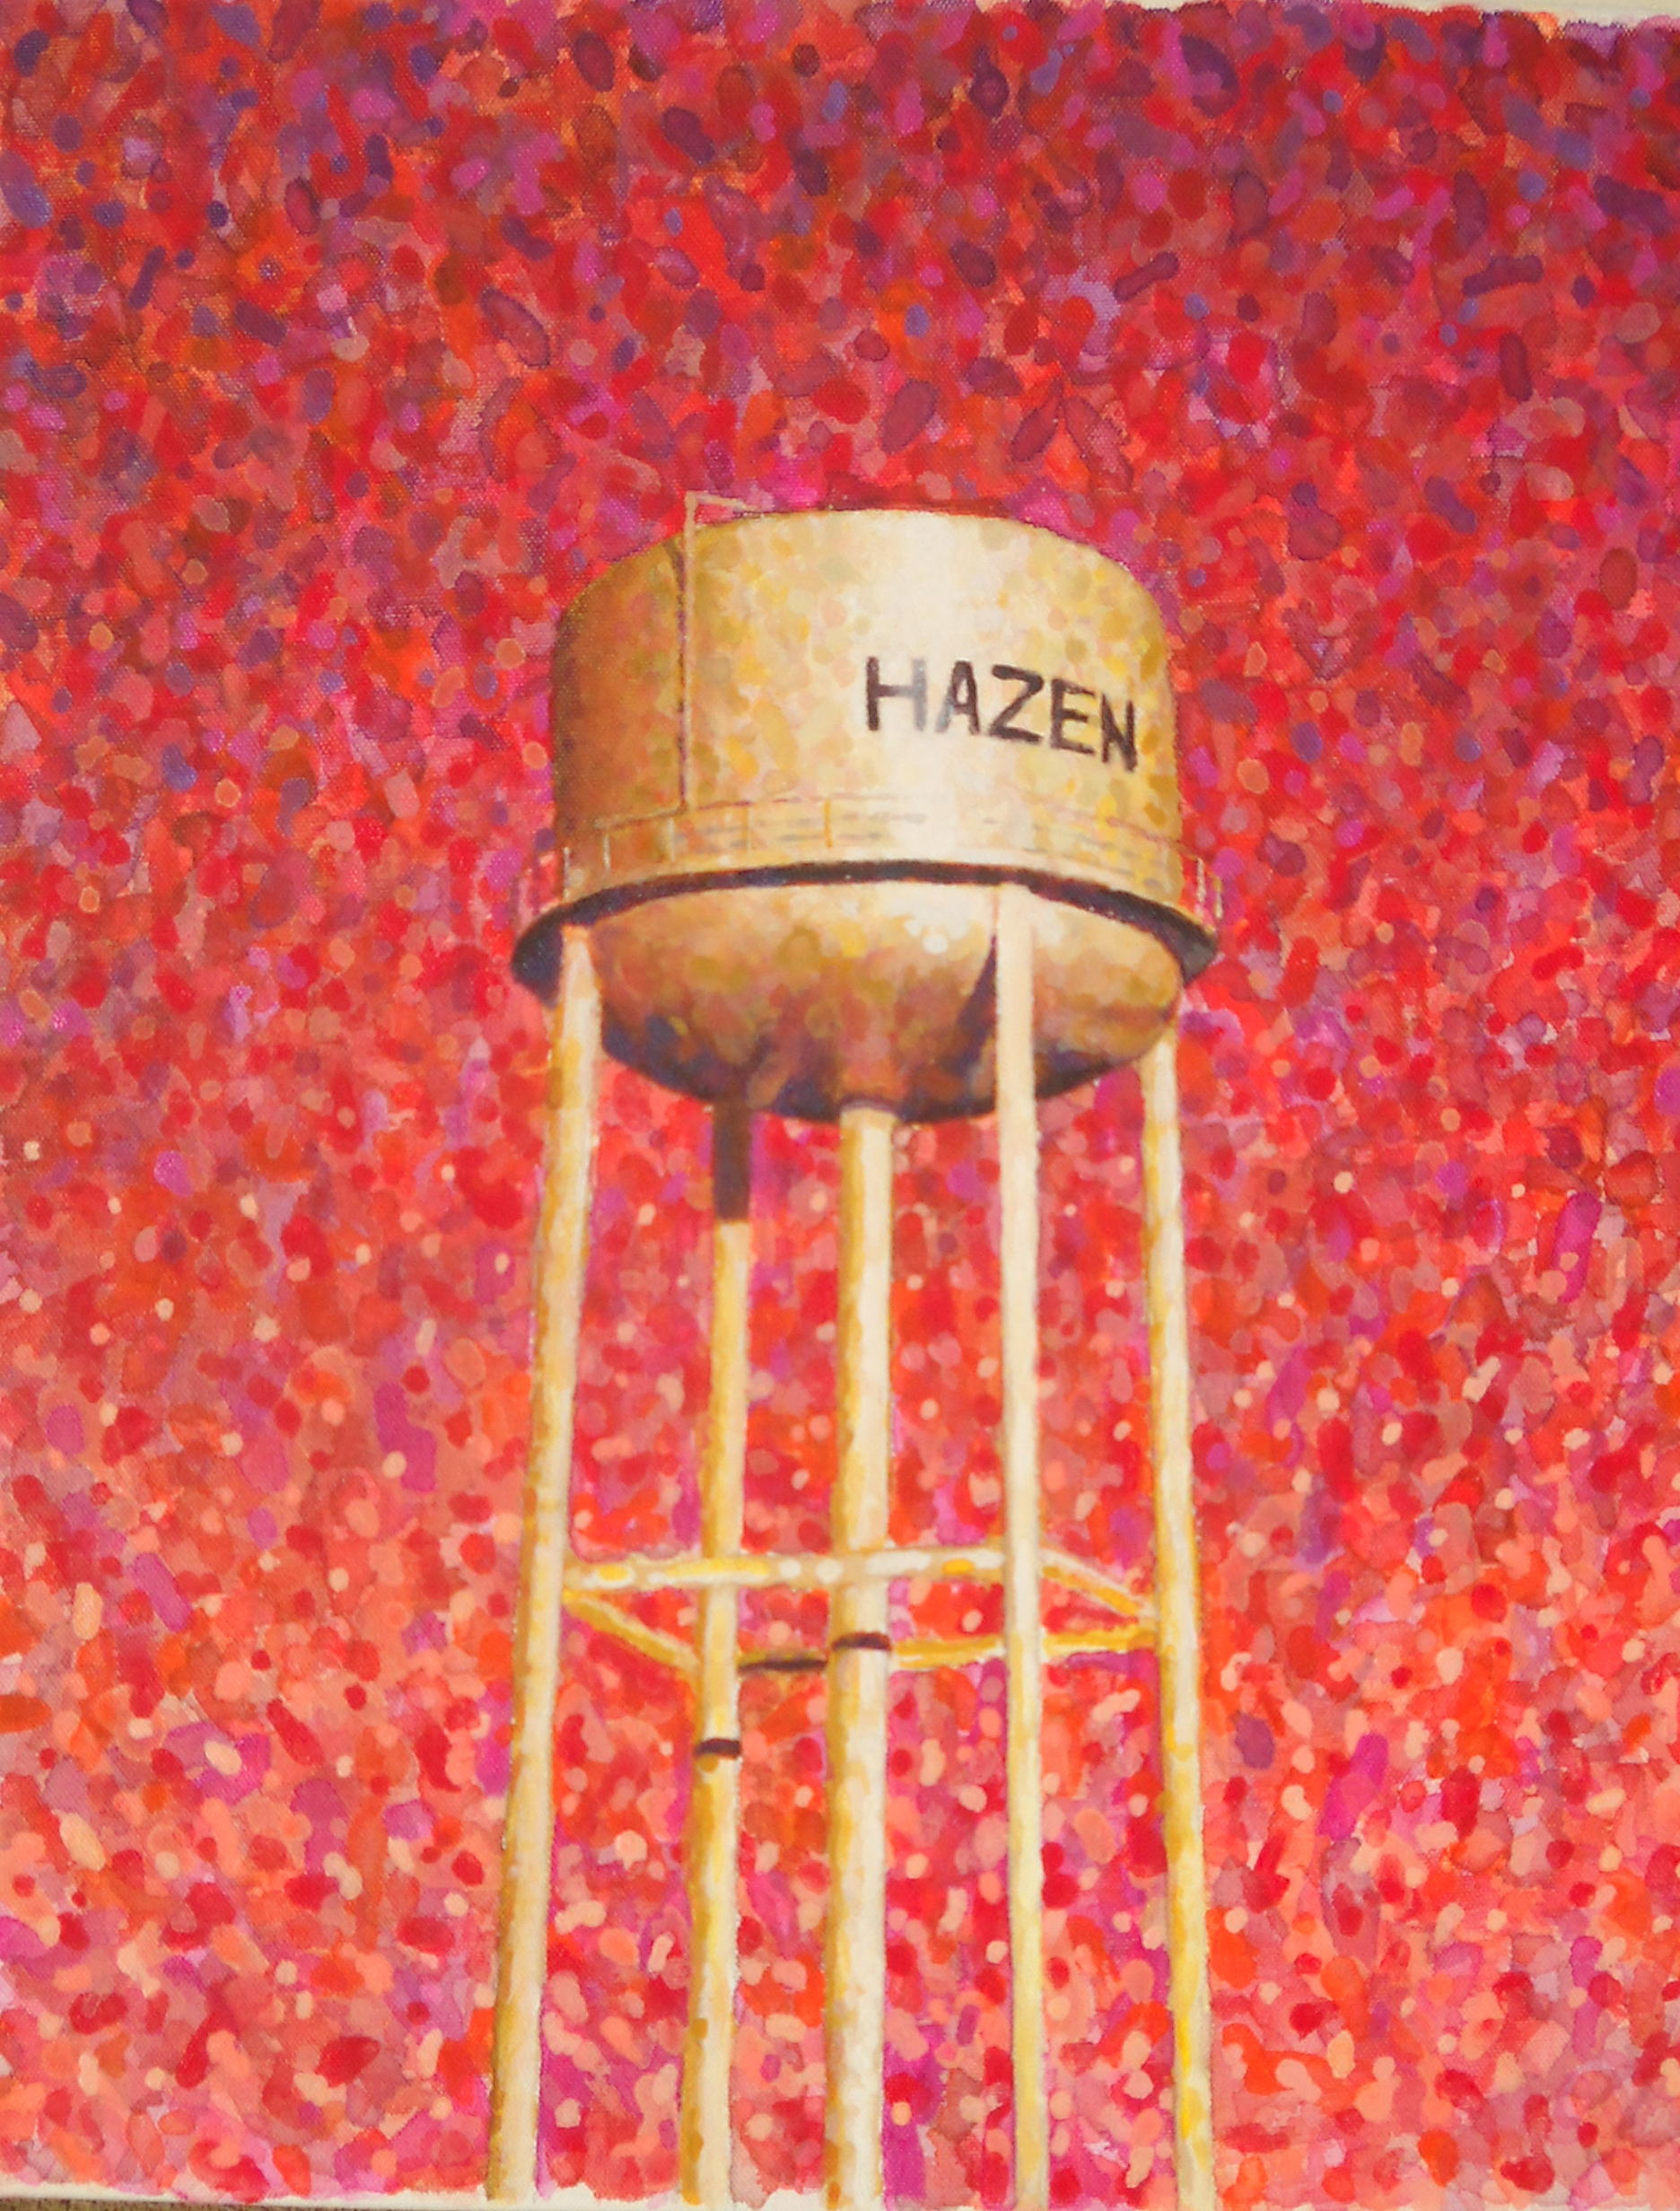 A different colorful version of the Hazen water tower